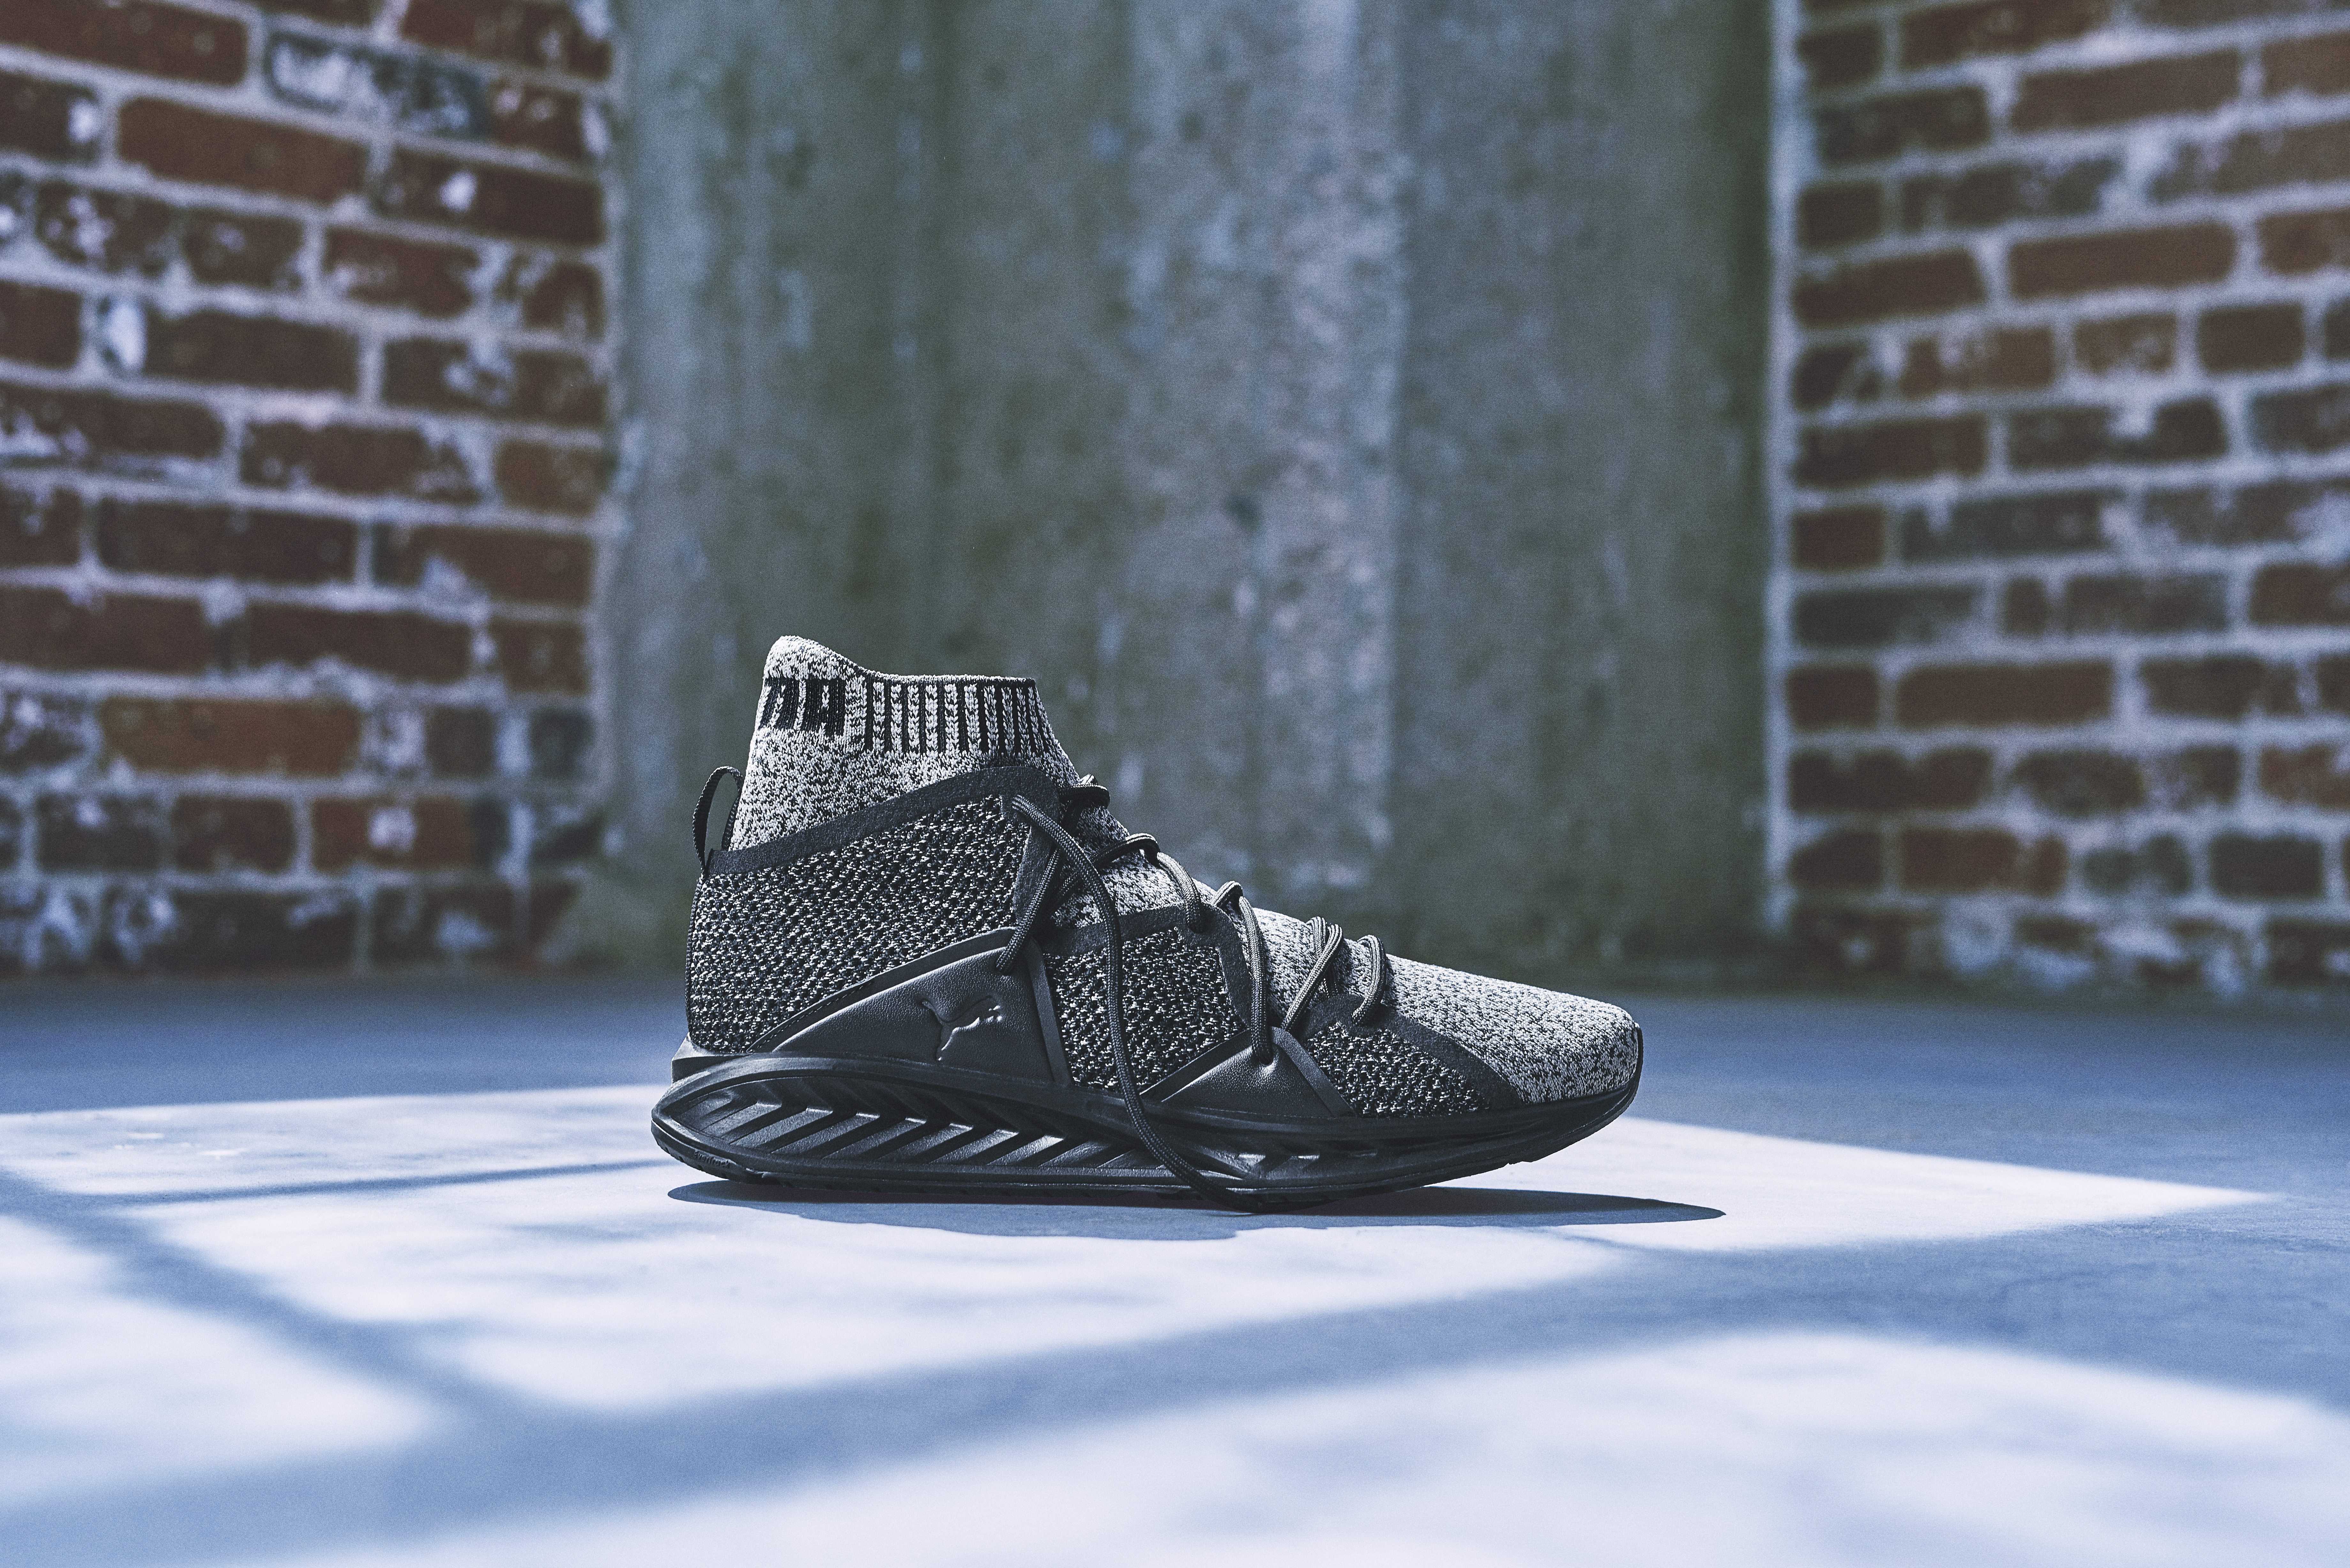 5eb9d4b6c42 ... knit for medial and lateral support surrounding the foot. Try out a set  now exclusively at PUMA Lab Powered by Foot Locker at a retail price of   135.00